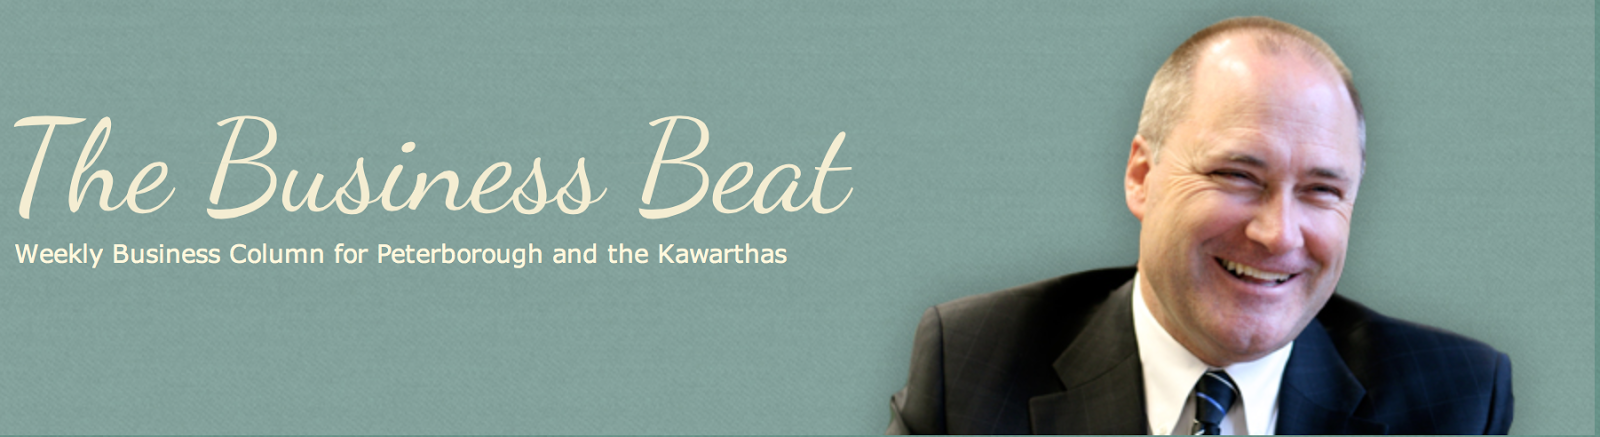 The Business Beat- Business news for Peterborough and the Kawarthas